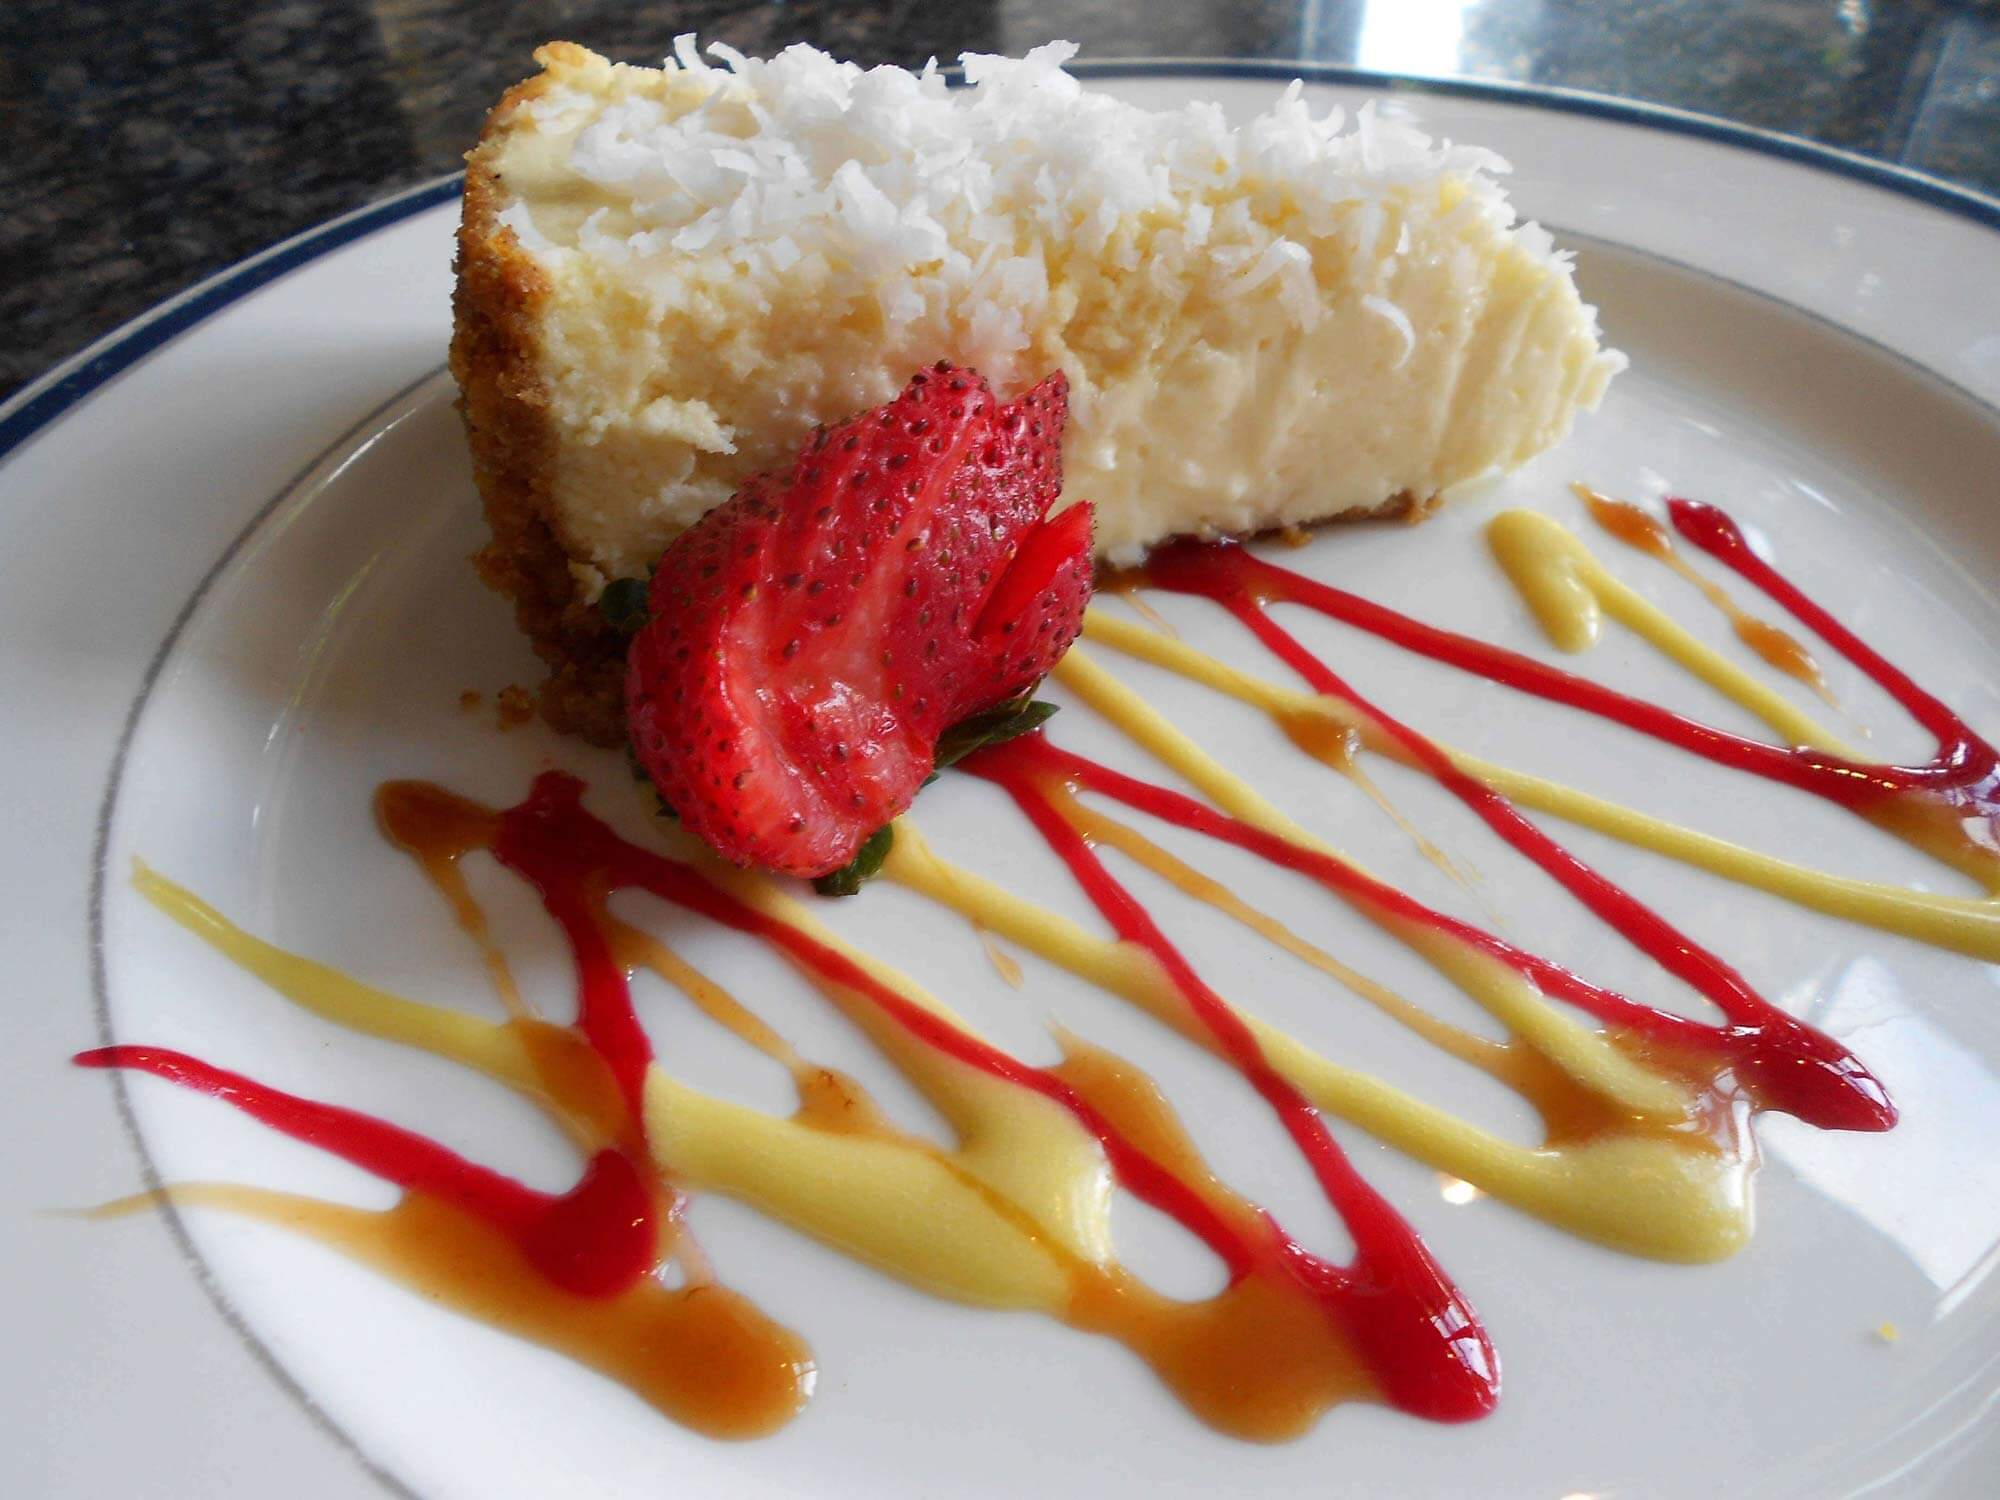 Coconuit cheesecake on counter